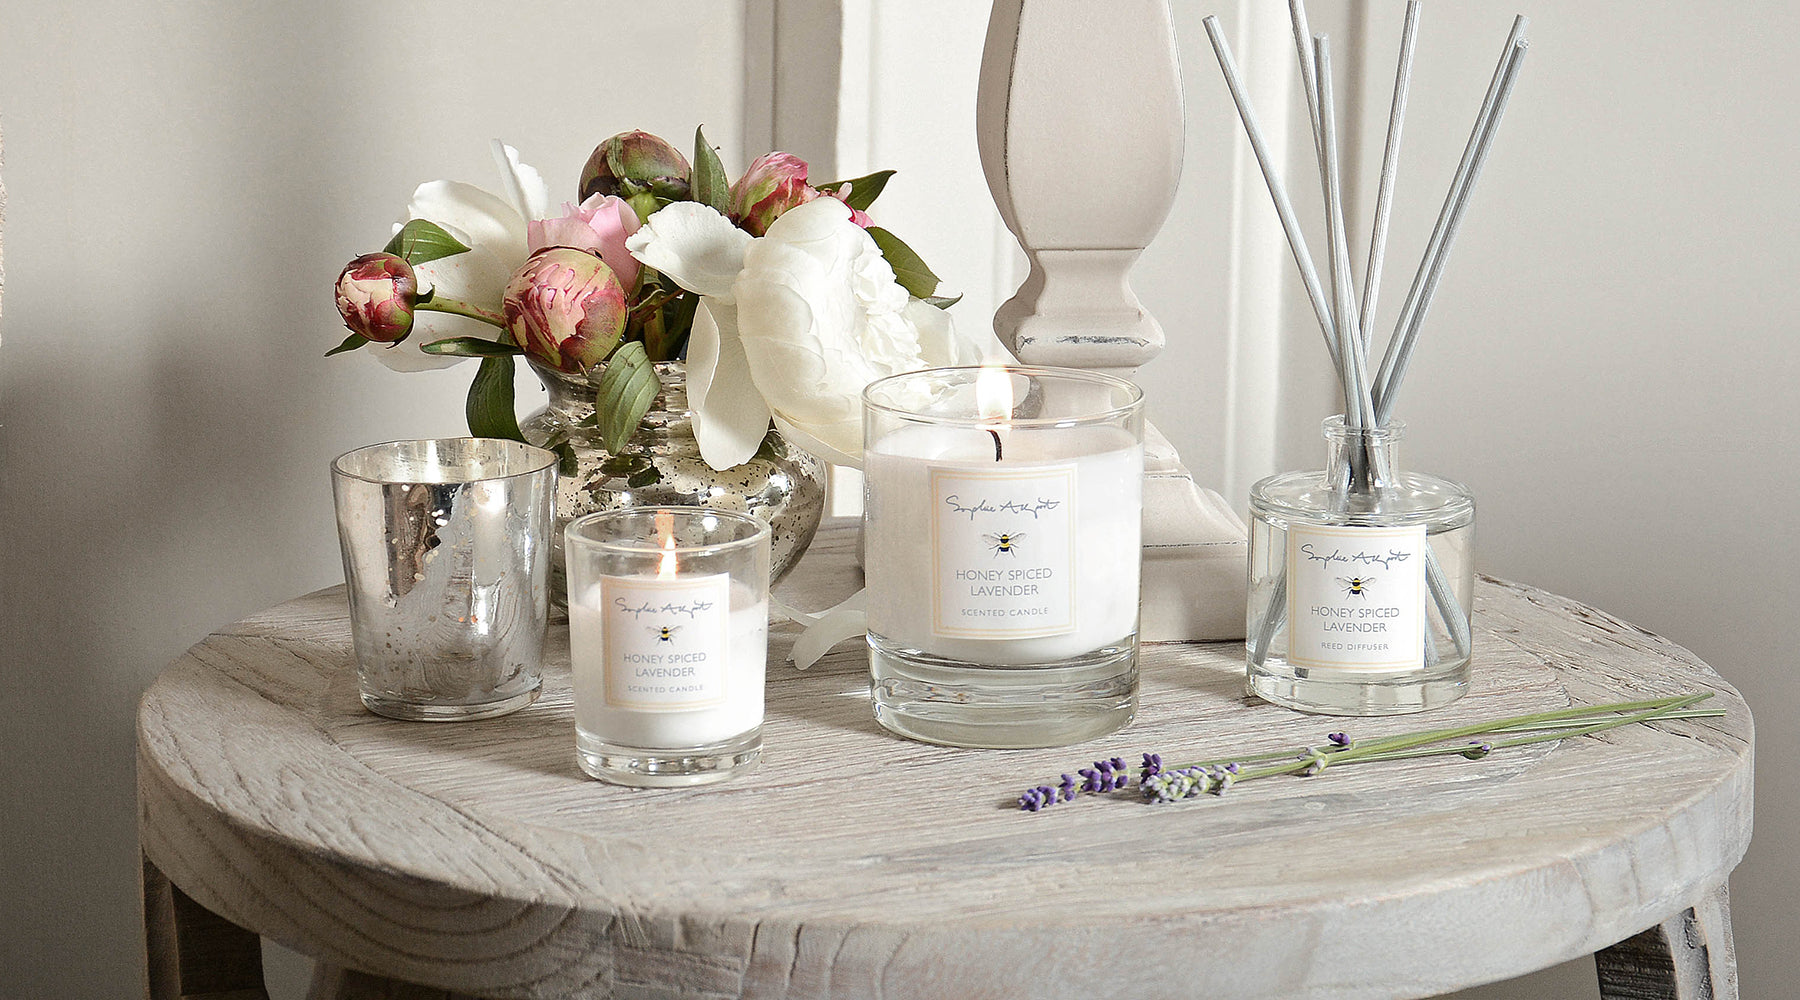 Home Fragrance and Candles by Sophie Allport